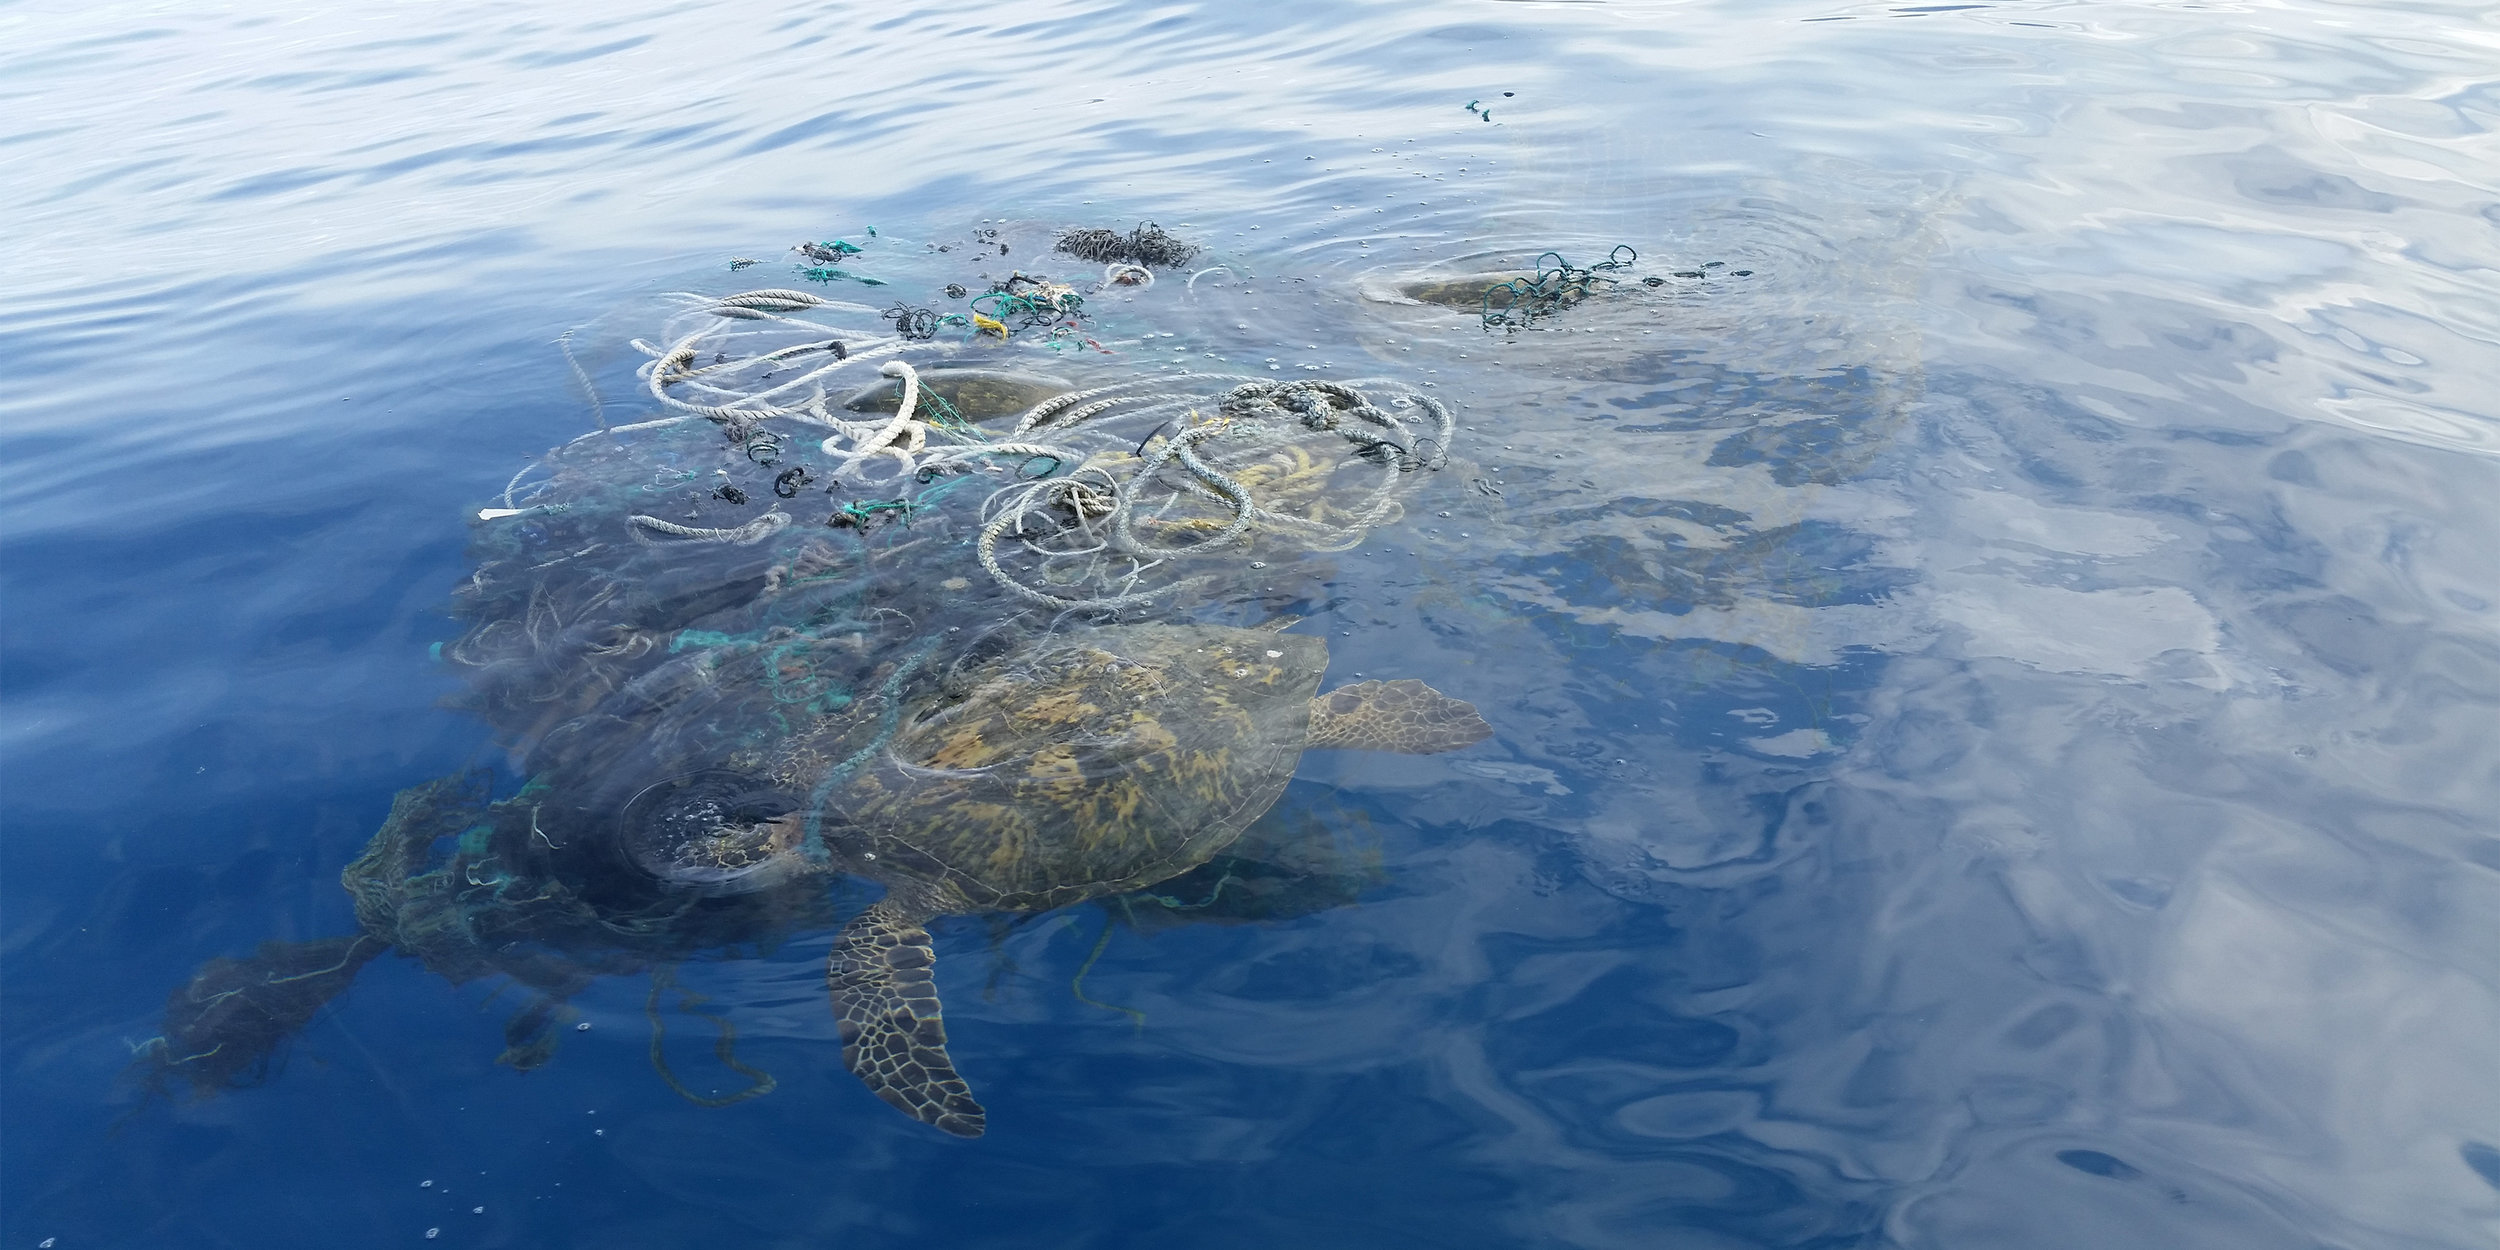 Entangled green sea turtle cannot remove itself from discarded fishing nets and ropes. Photo: Petty Officer 1st Class Matthew Young (U.S. Coast Guard/Released)